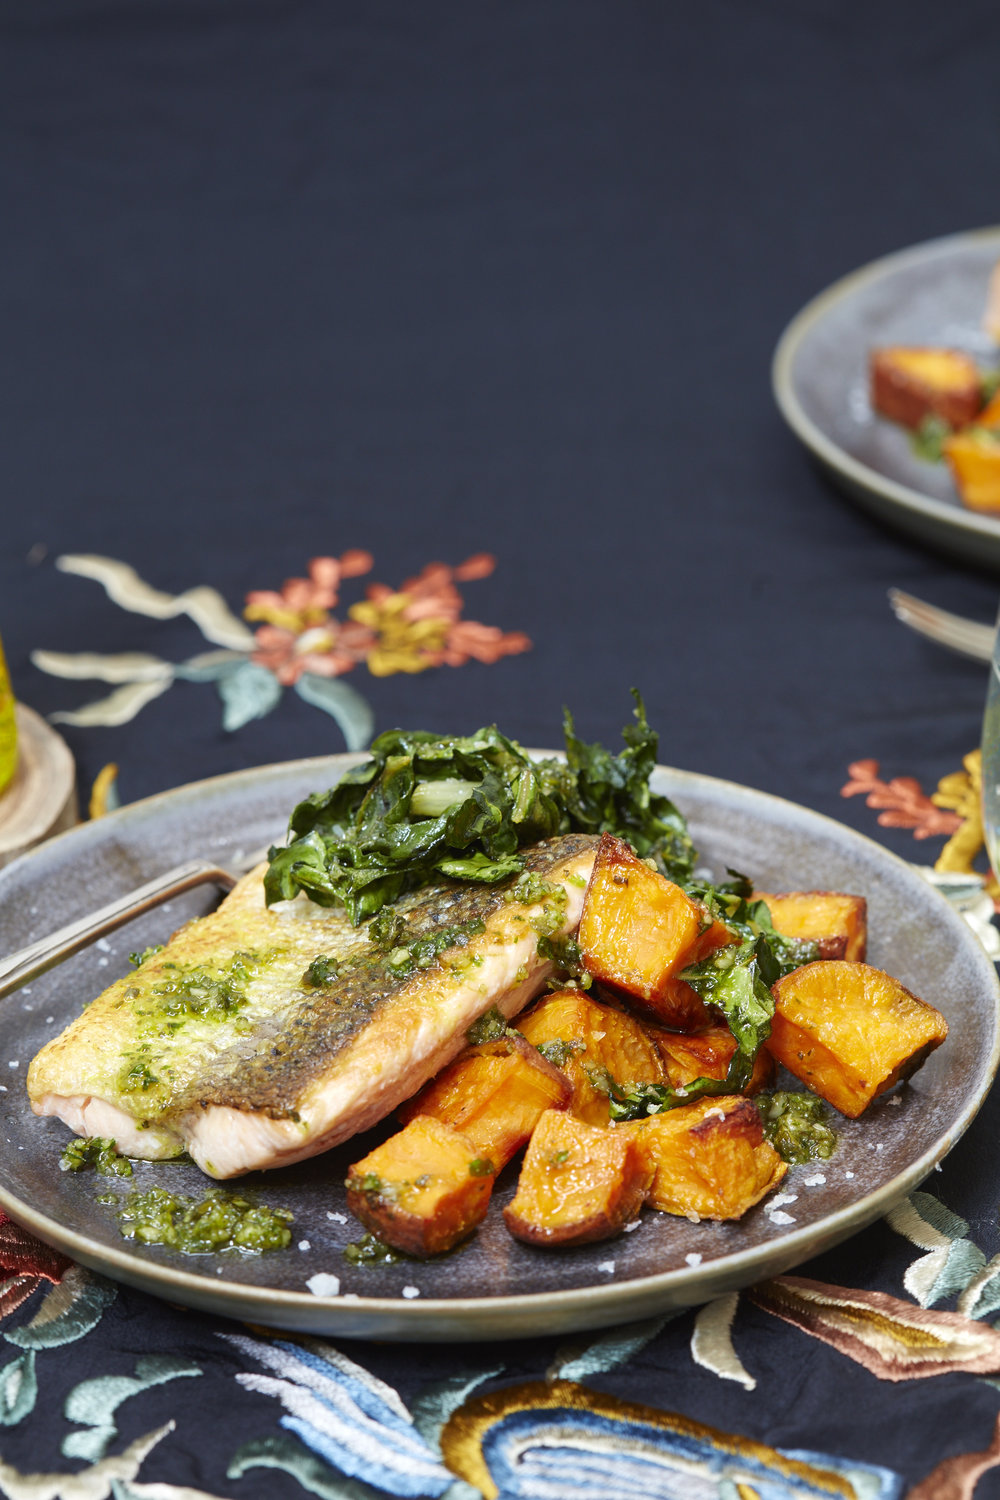 Pumpkin seed pesto salmon